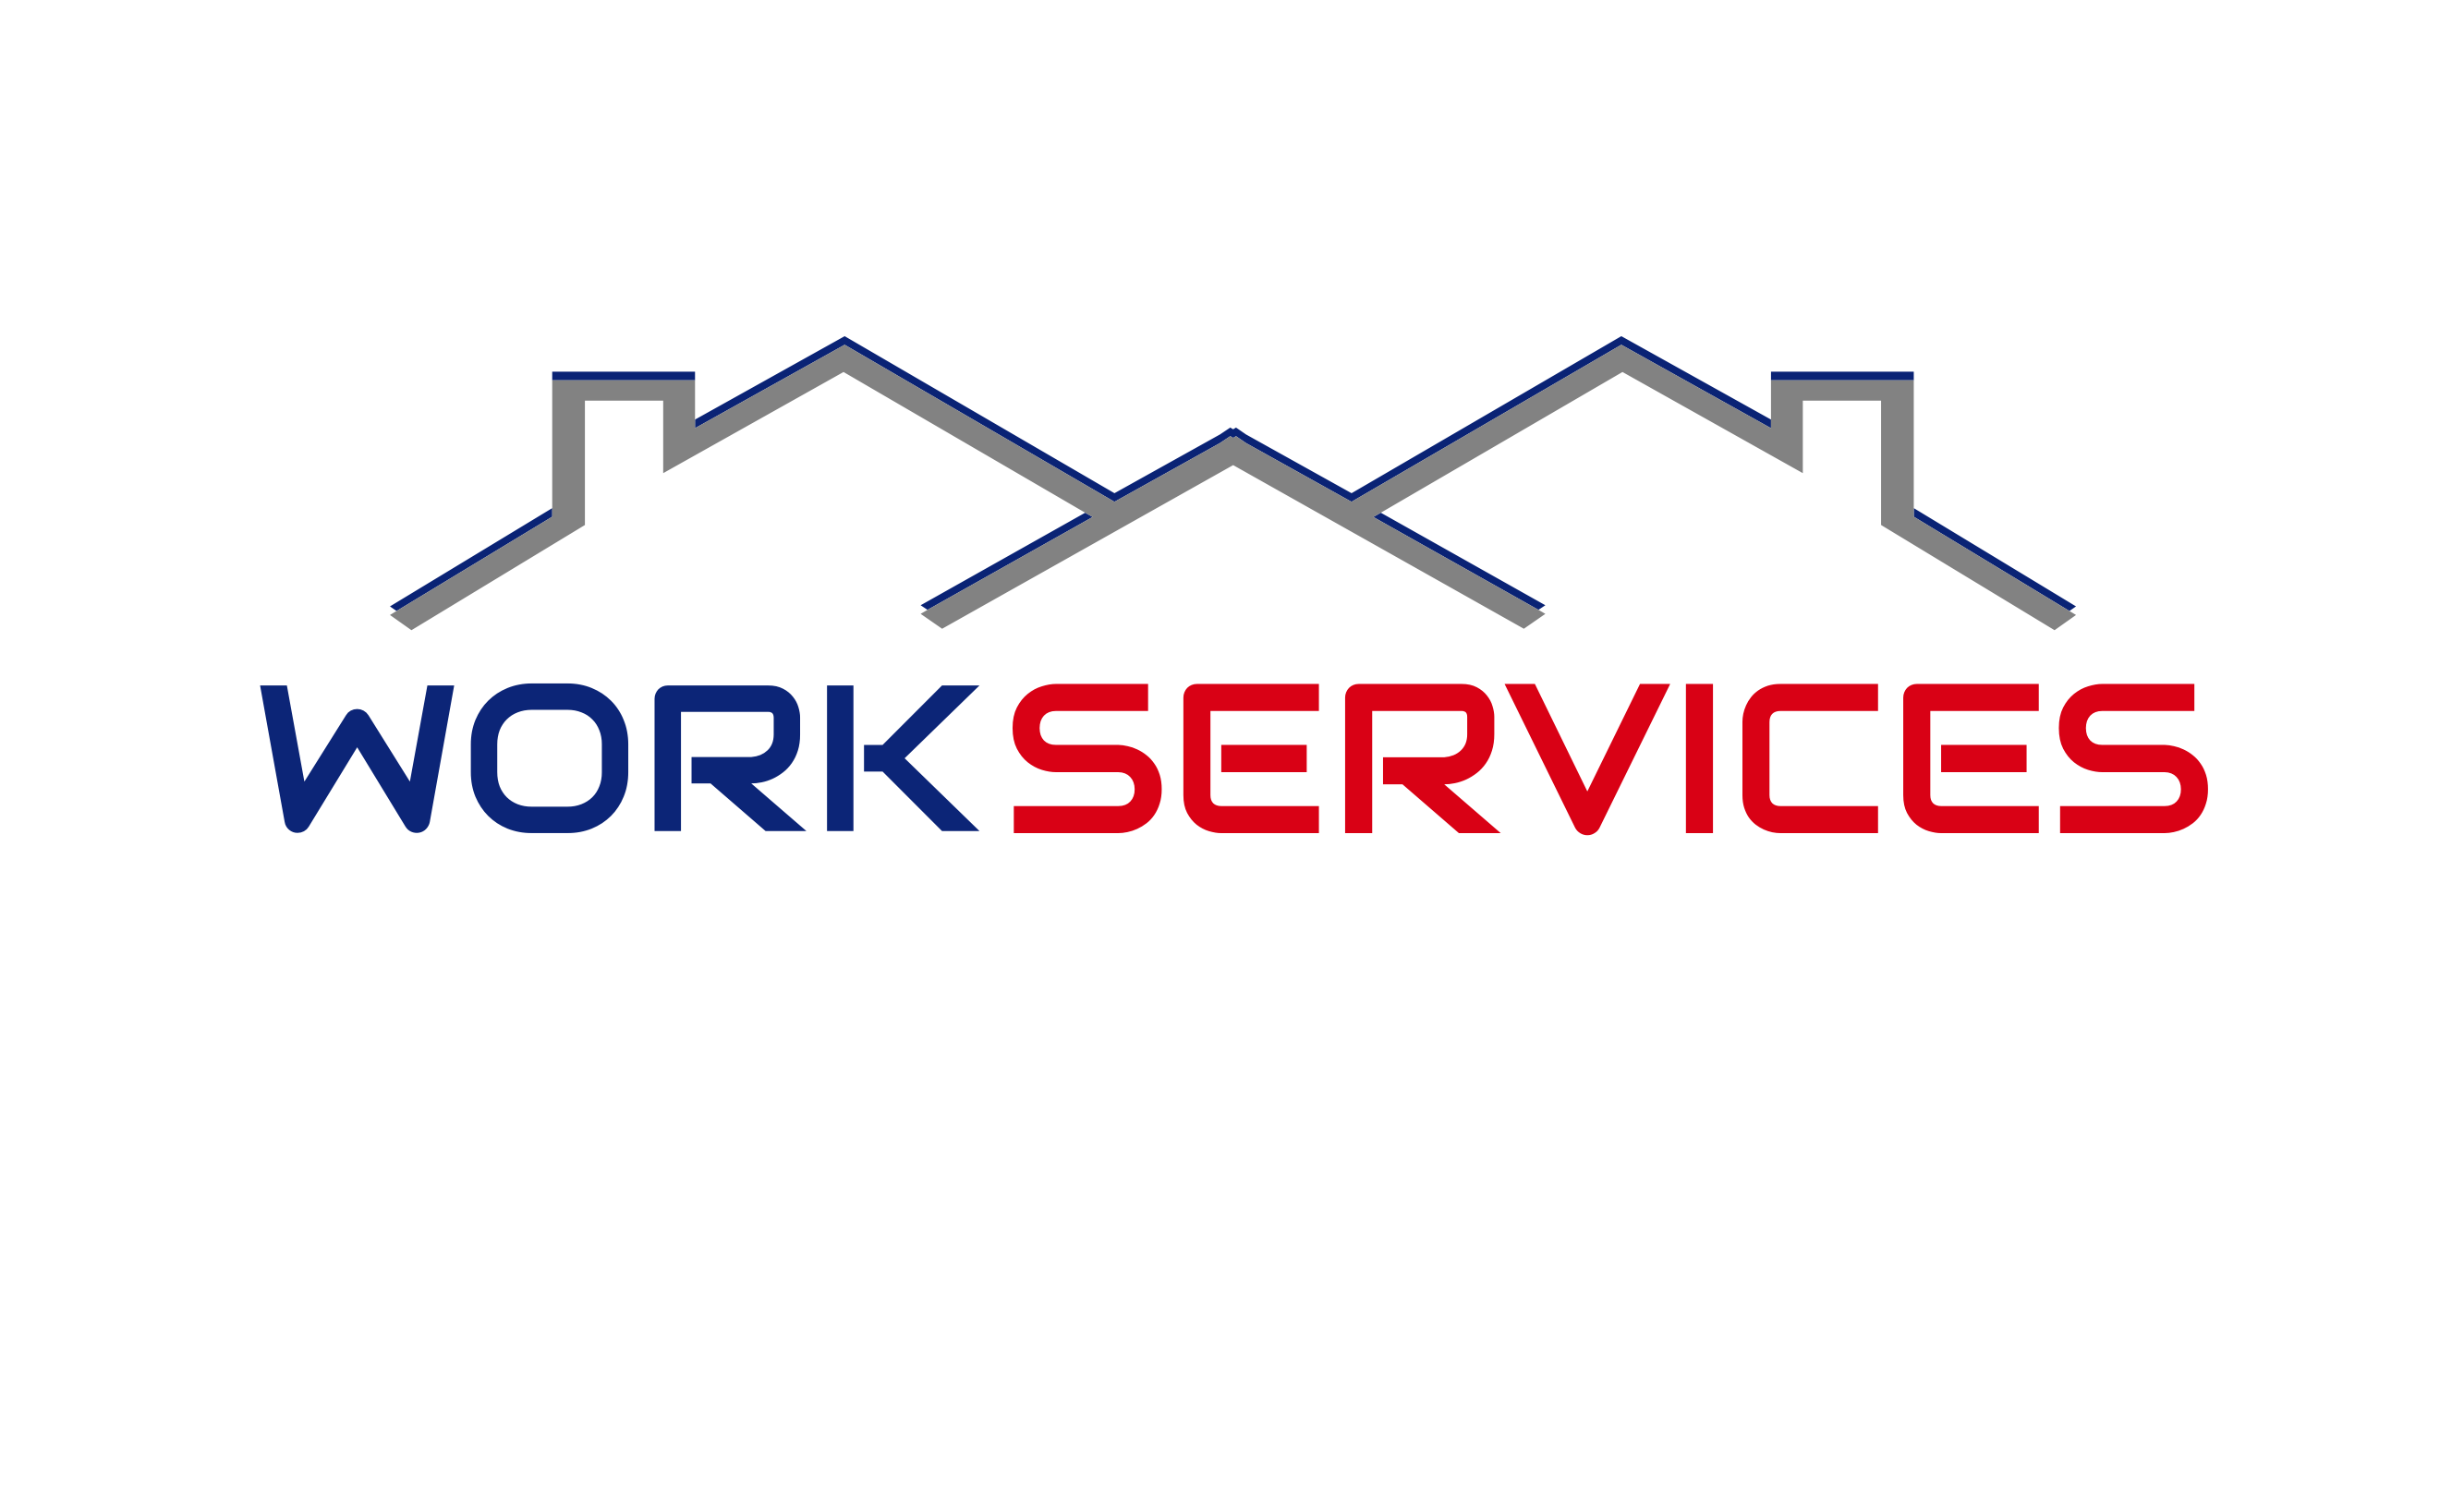 WorkServices